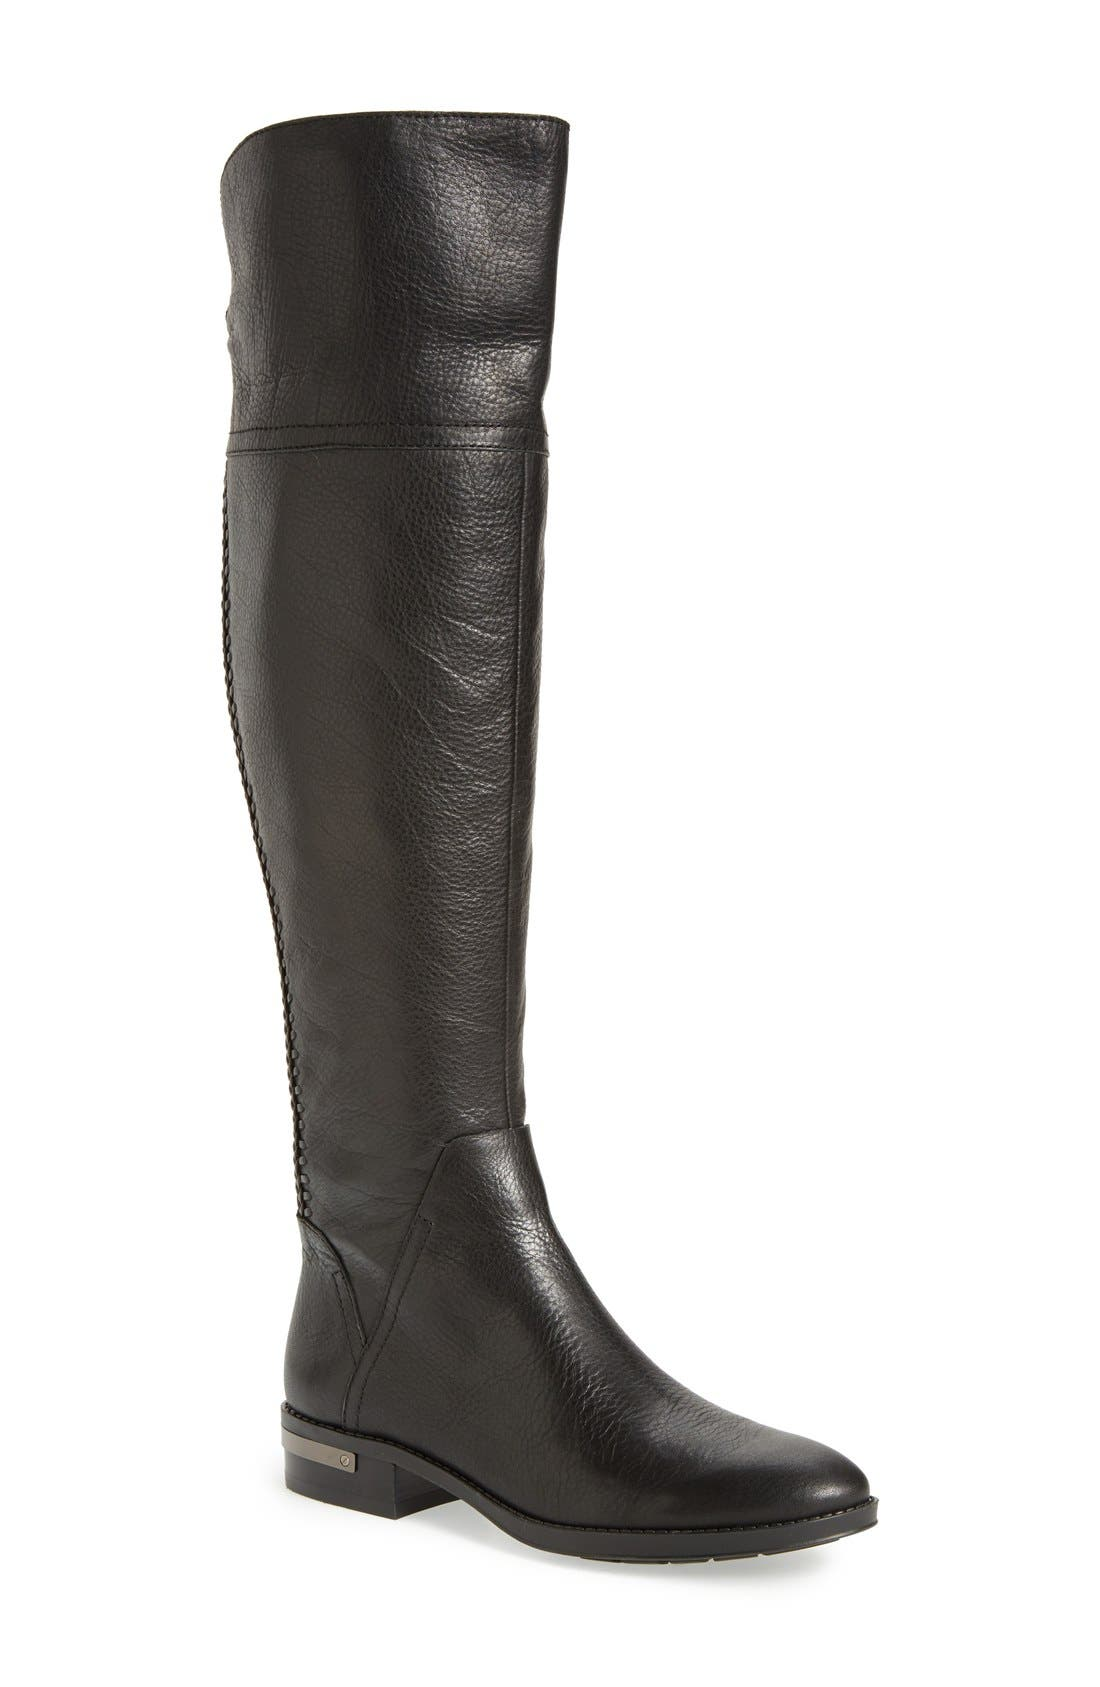 'Pedra' Over the Knee Boot,                             Main thumbnail 1, color,                             001